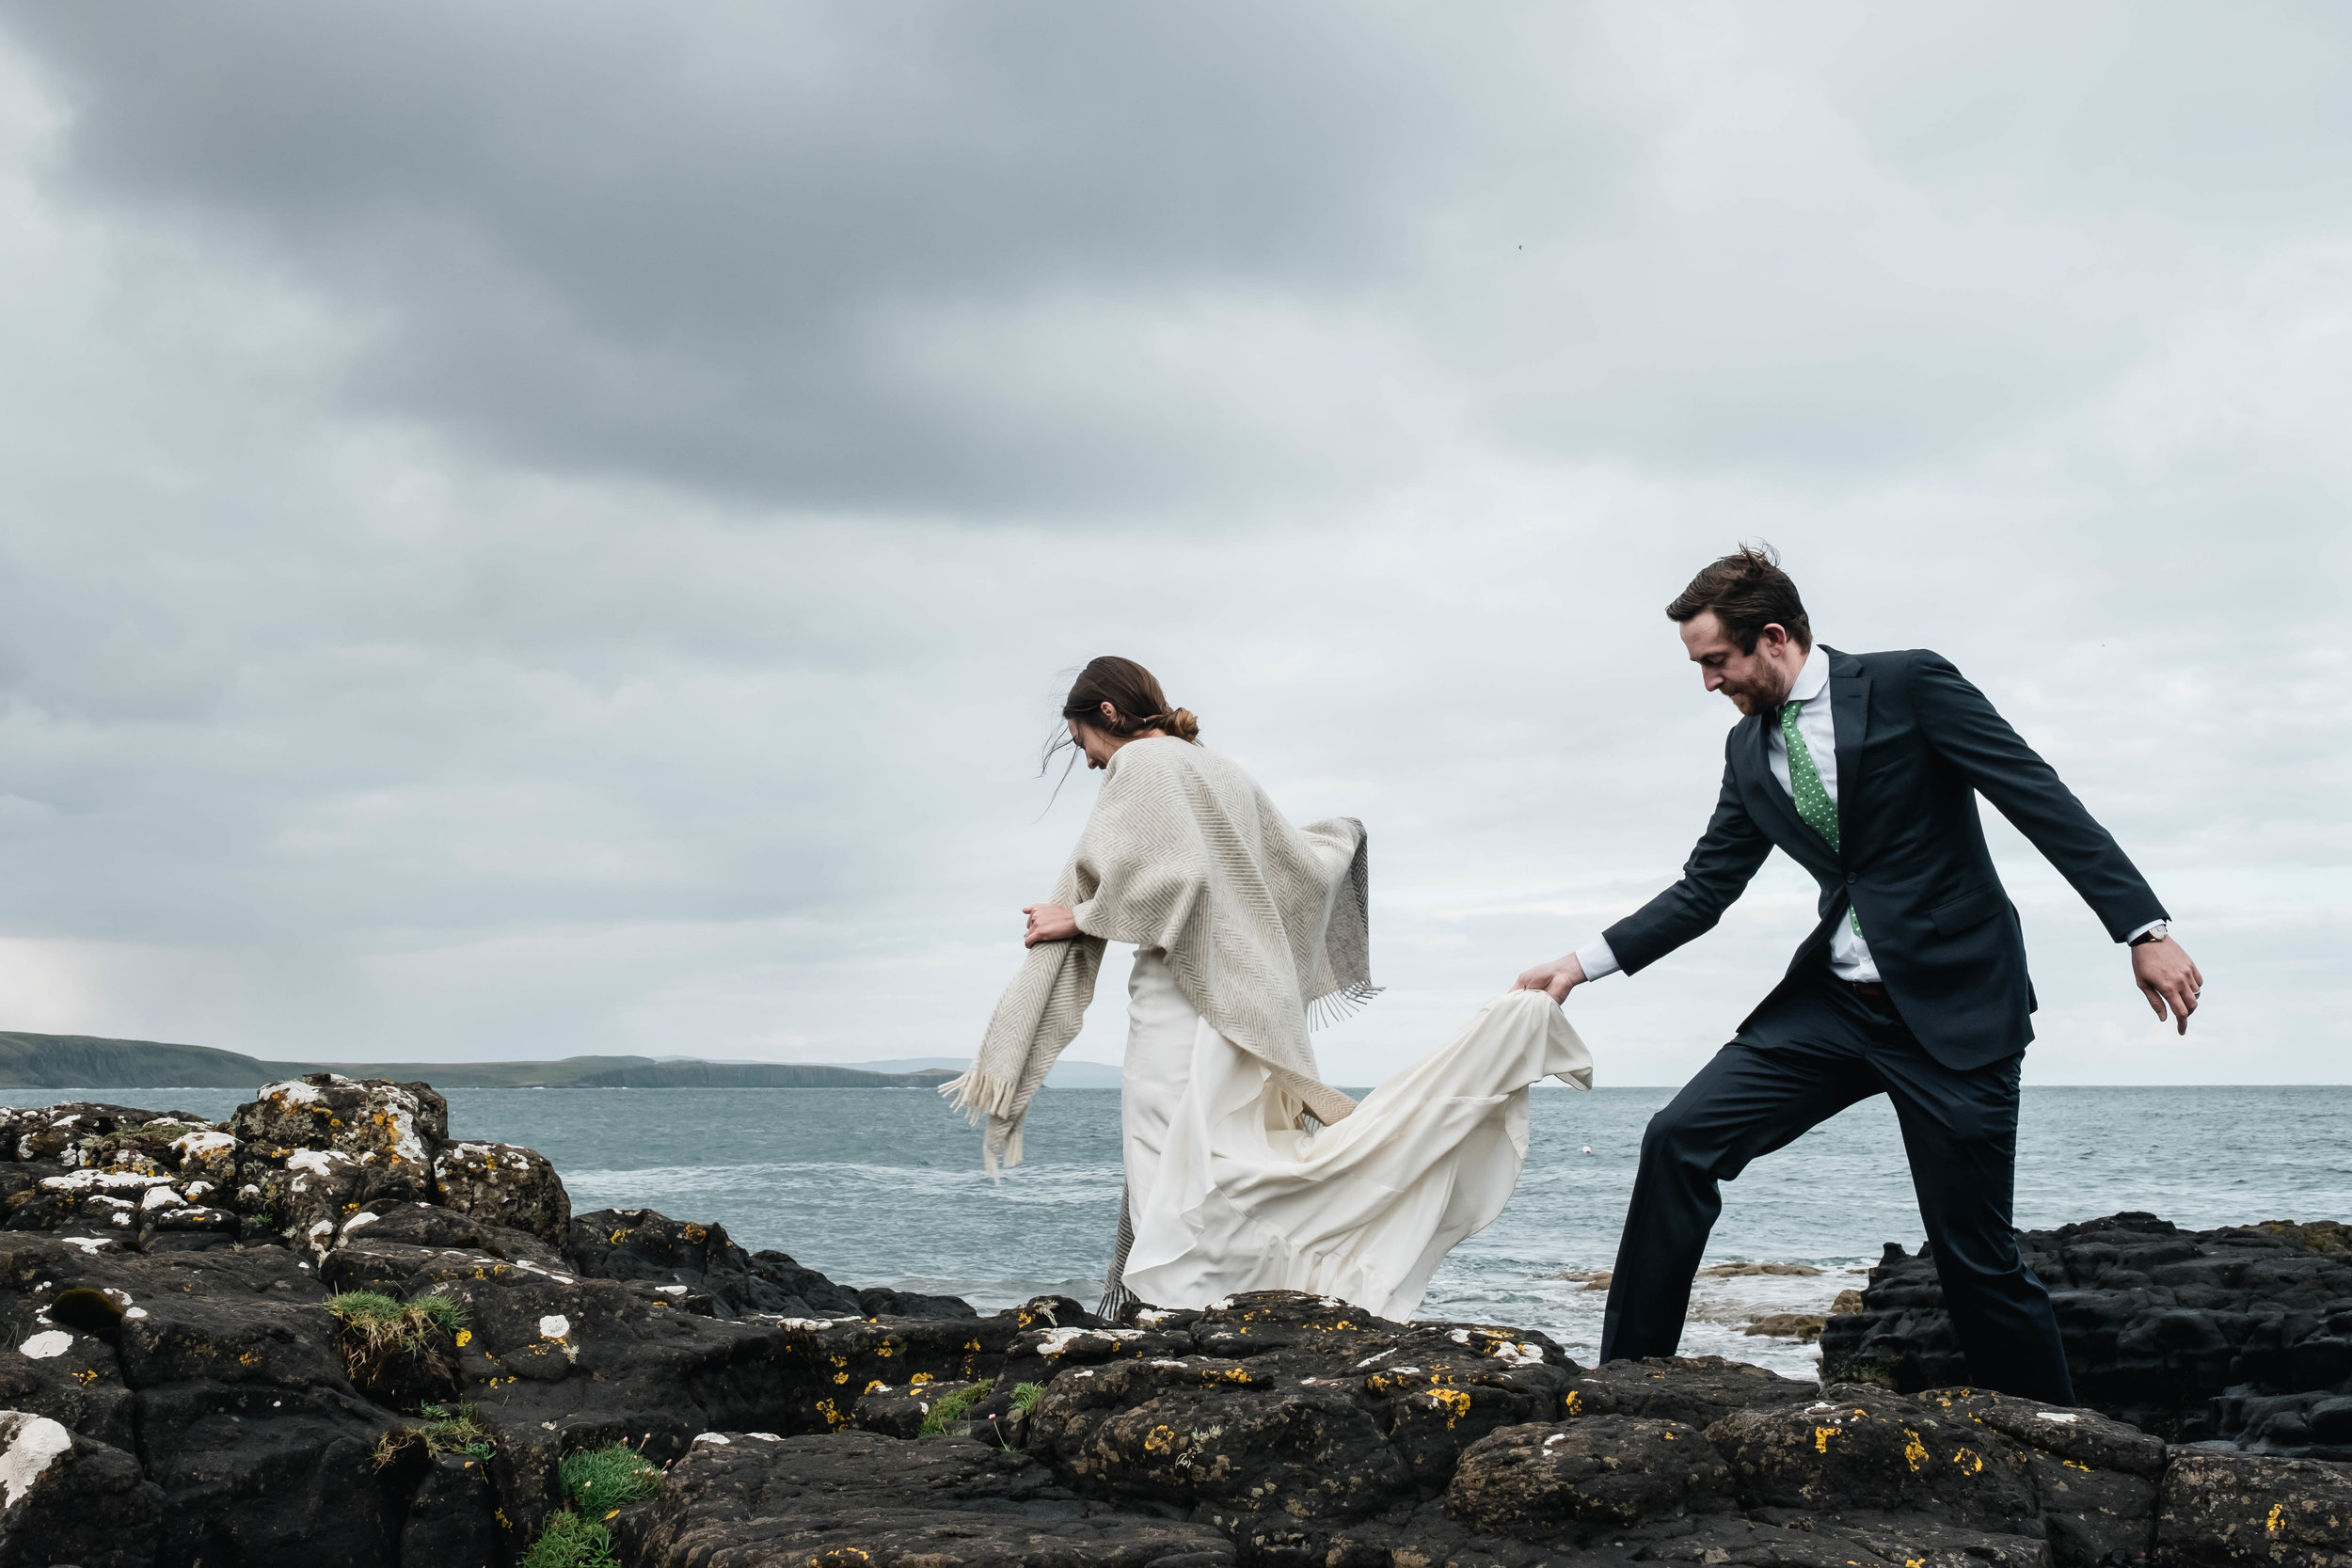 groom helping his bride by holding her dress as they walk on the rocks